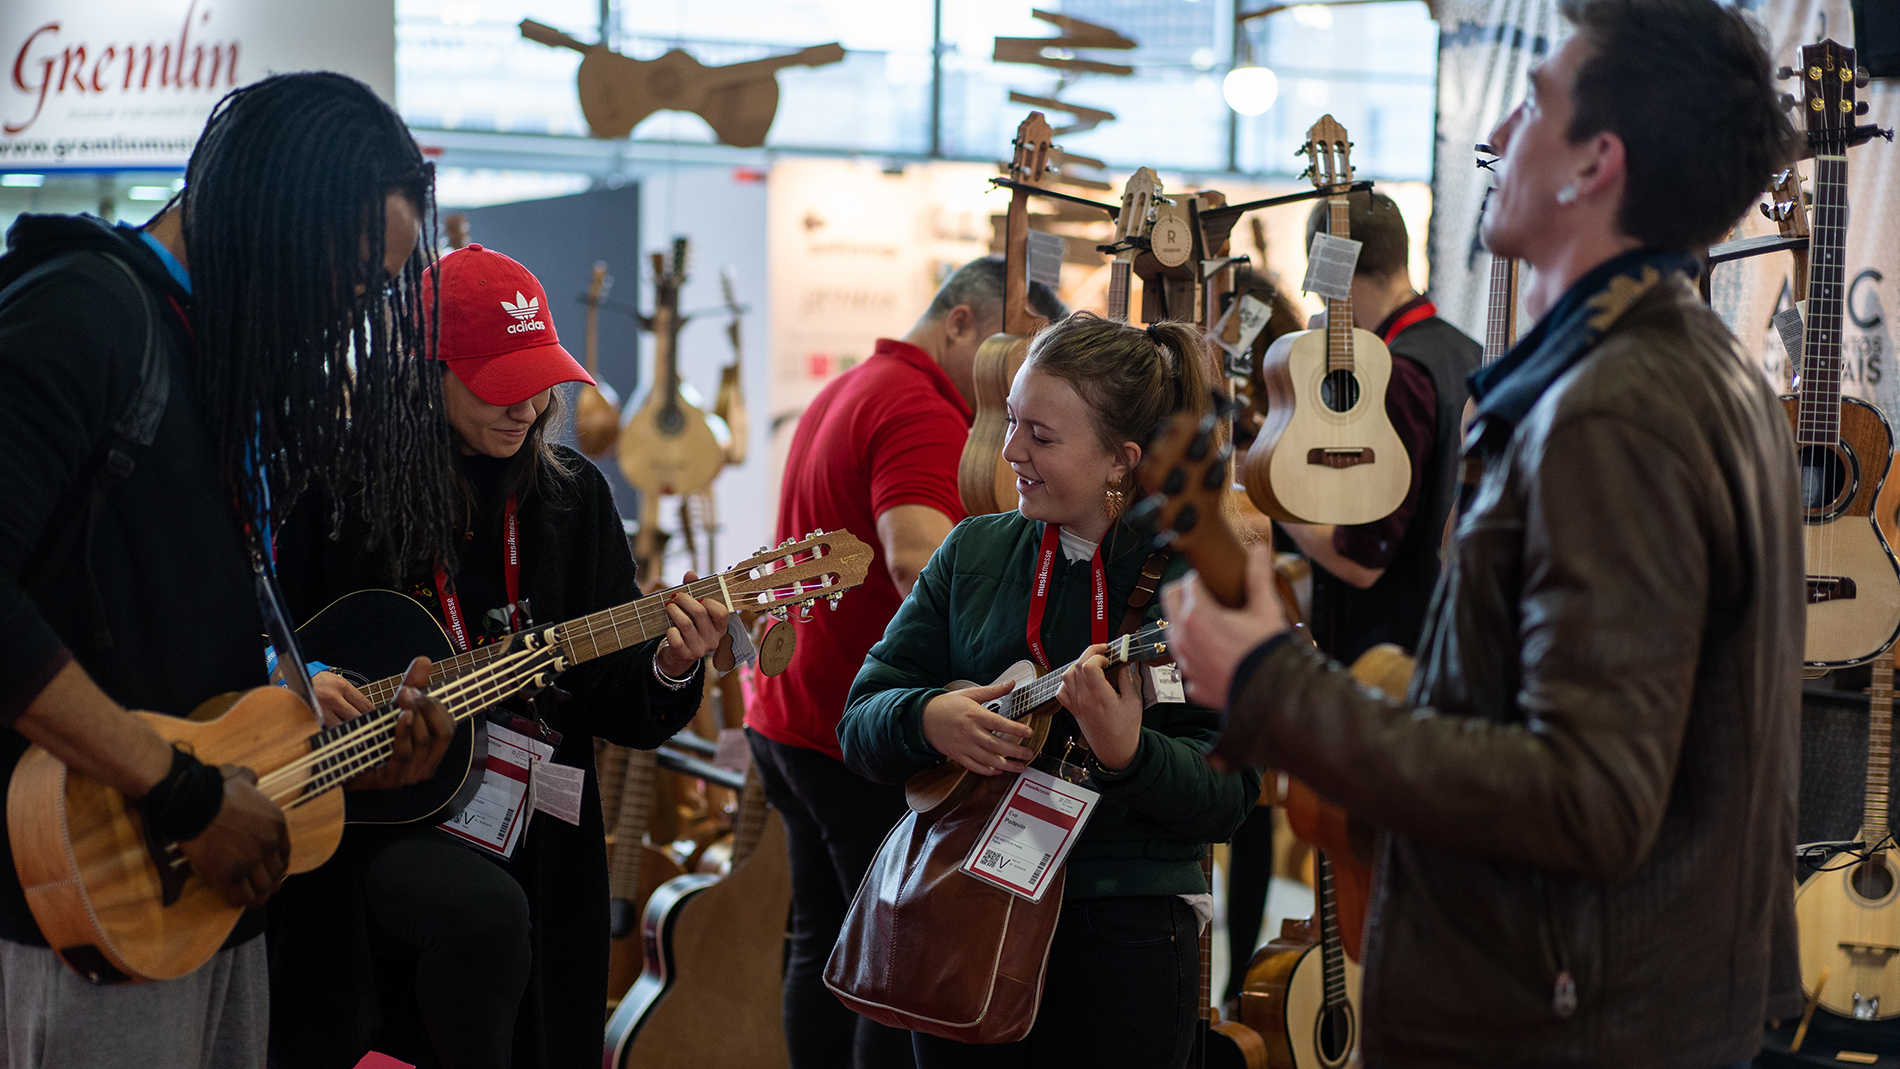 Visitors play guitar together at the Musikmesse